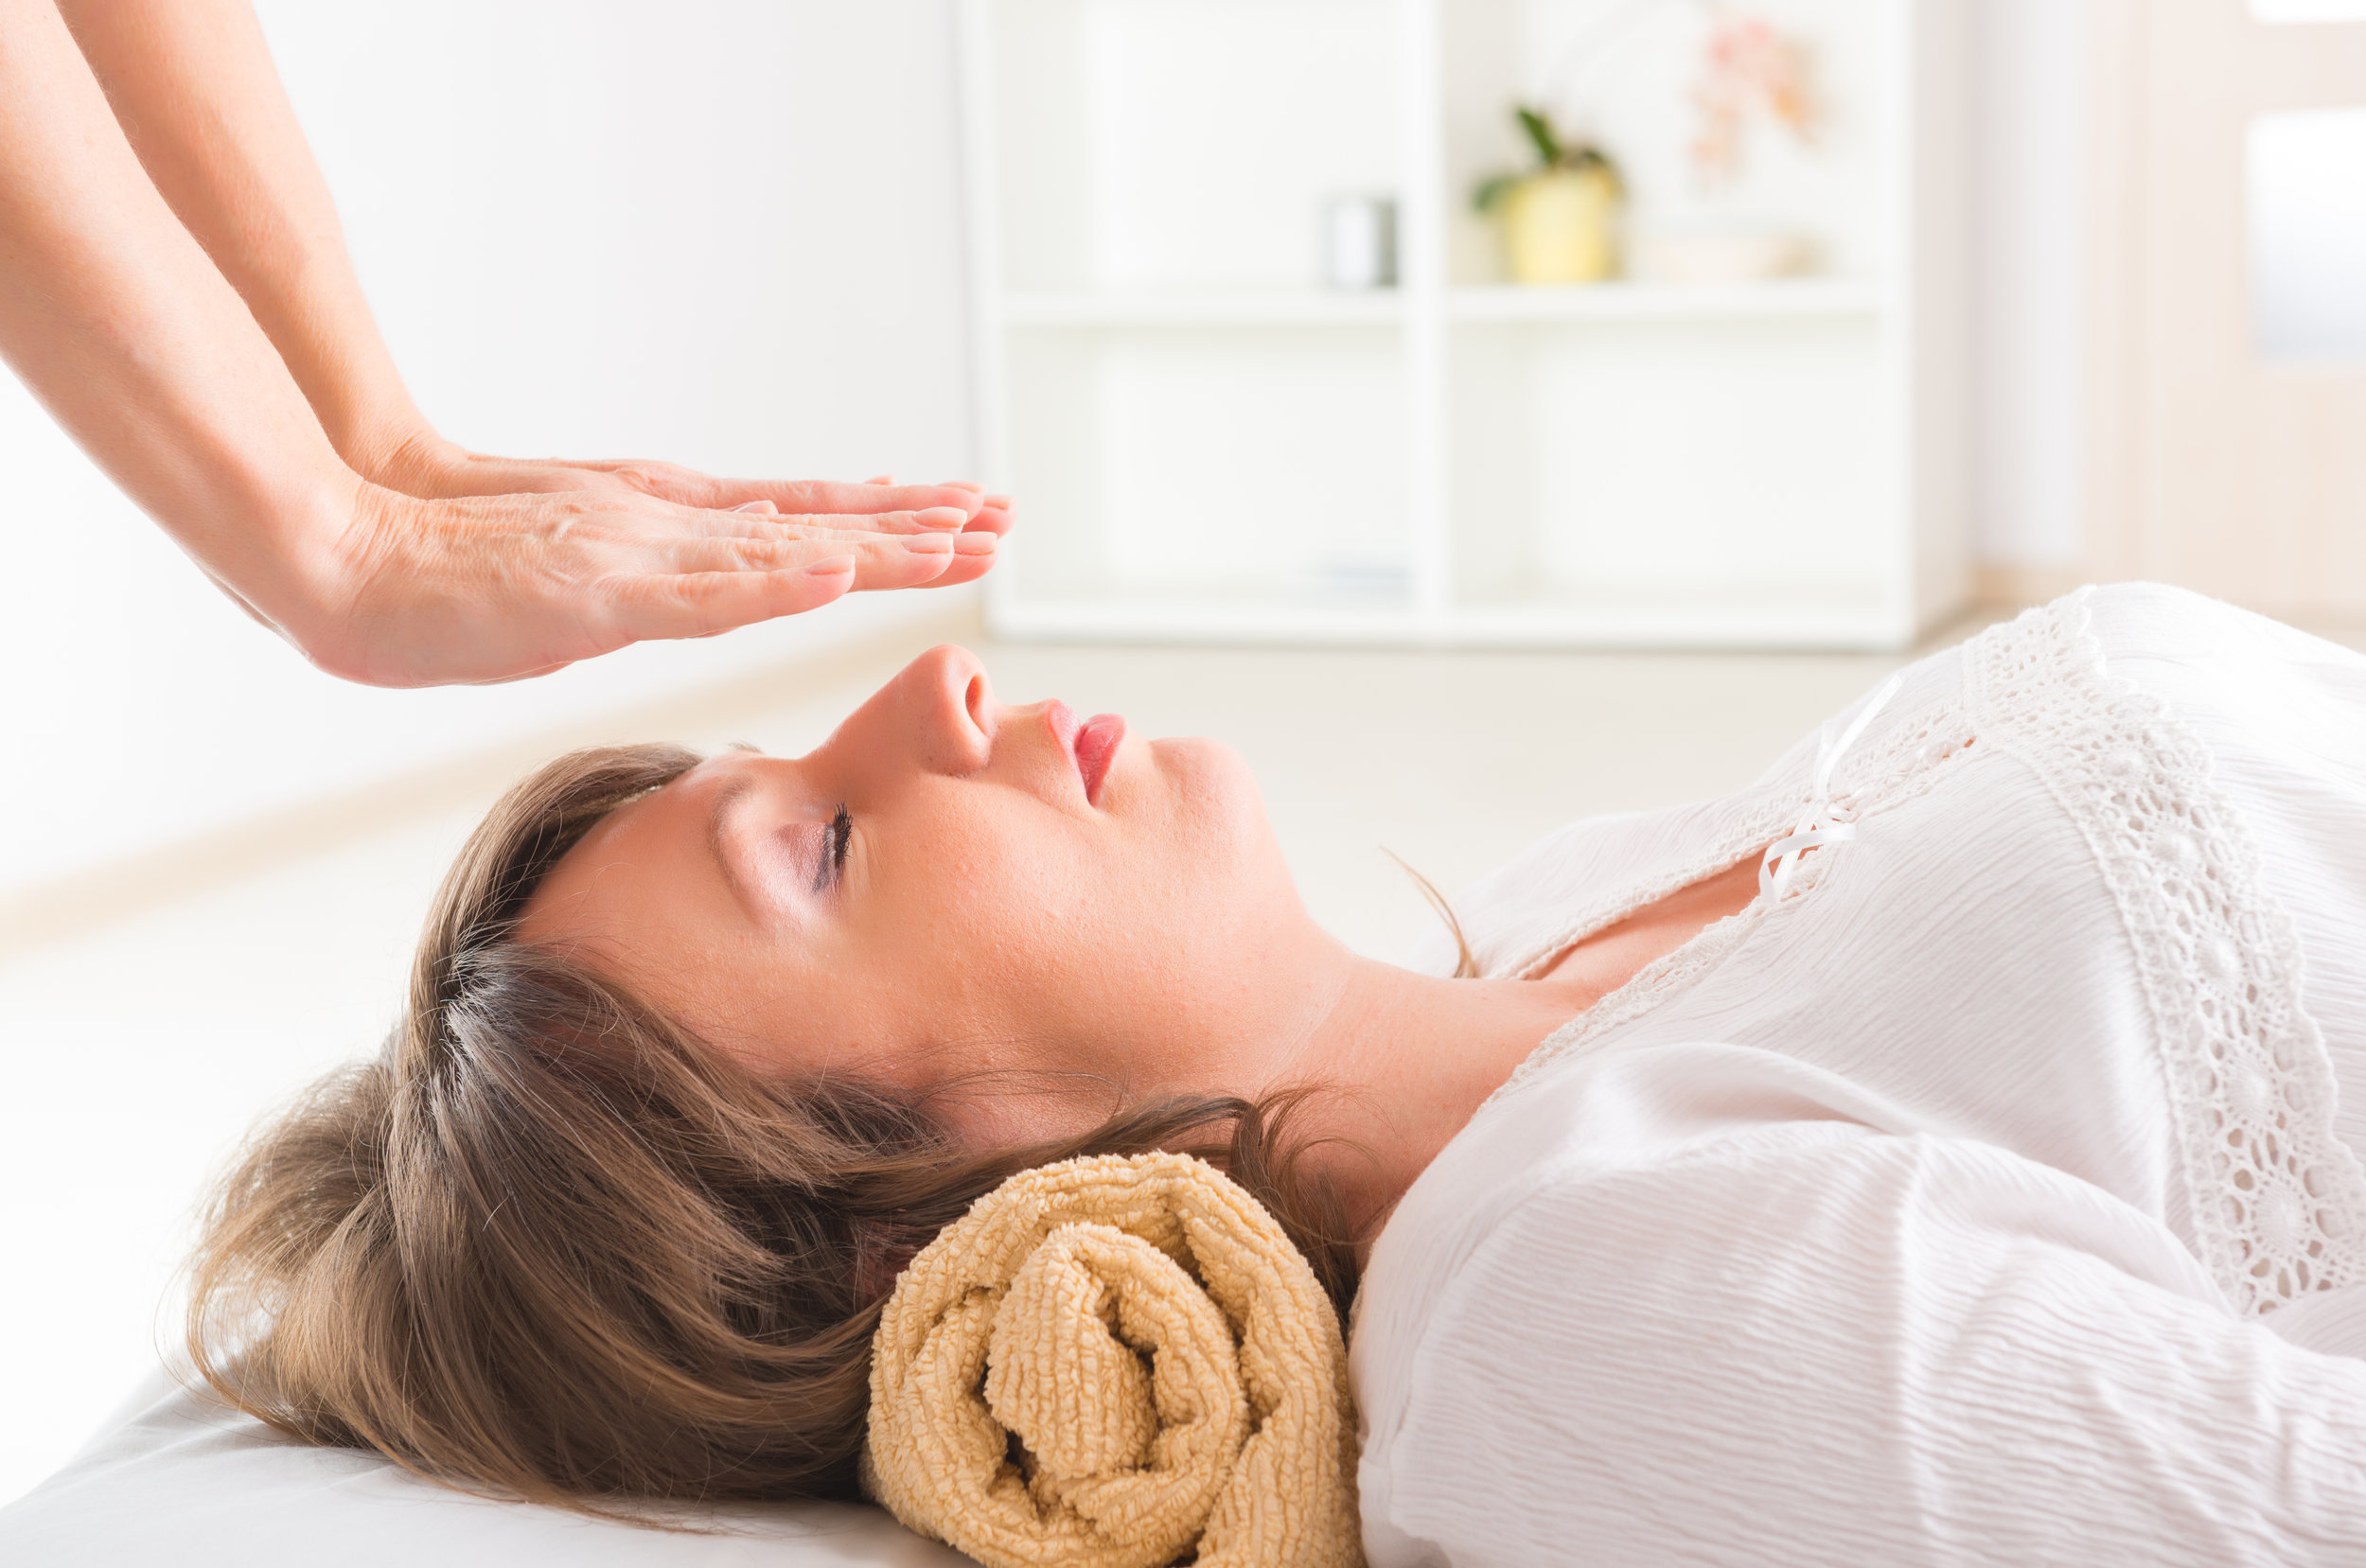 GTi Reiki Level 1 & 2 £125 - This course covers the techniques to professionally complete different levels of Reiki healing routines. Theory is delivered online with clear diagrams. The practical element is taught in a one day training session at a choice of UK locations and includes your Reiki level one and two attunements as well as training in using Reiki and an assessment. Consultation and contra-indication guidance is covered in the theory element of the course. Photographs and diagrams ensure this course is both engaging and informative to give you the confidence to perform Reiki treatments.